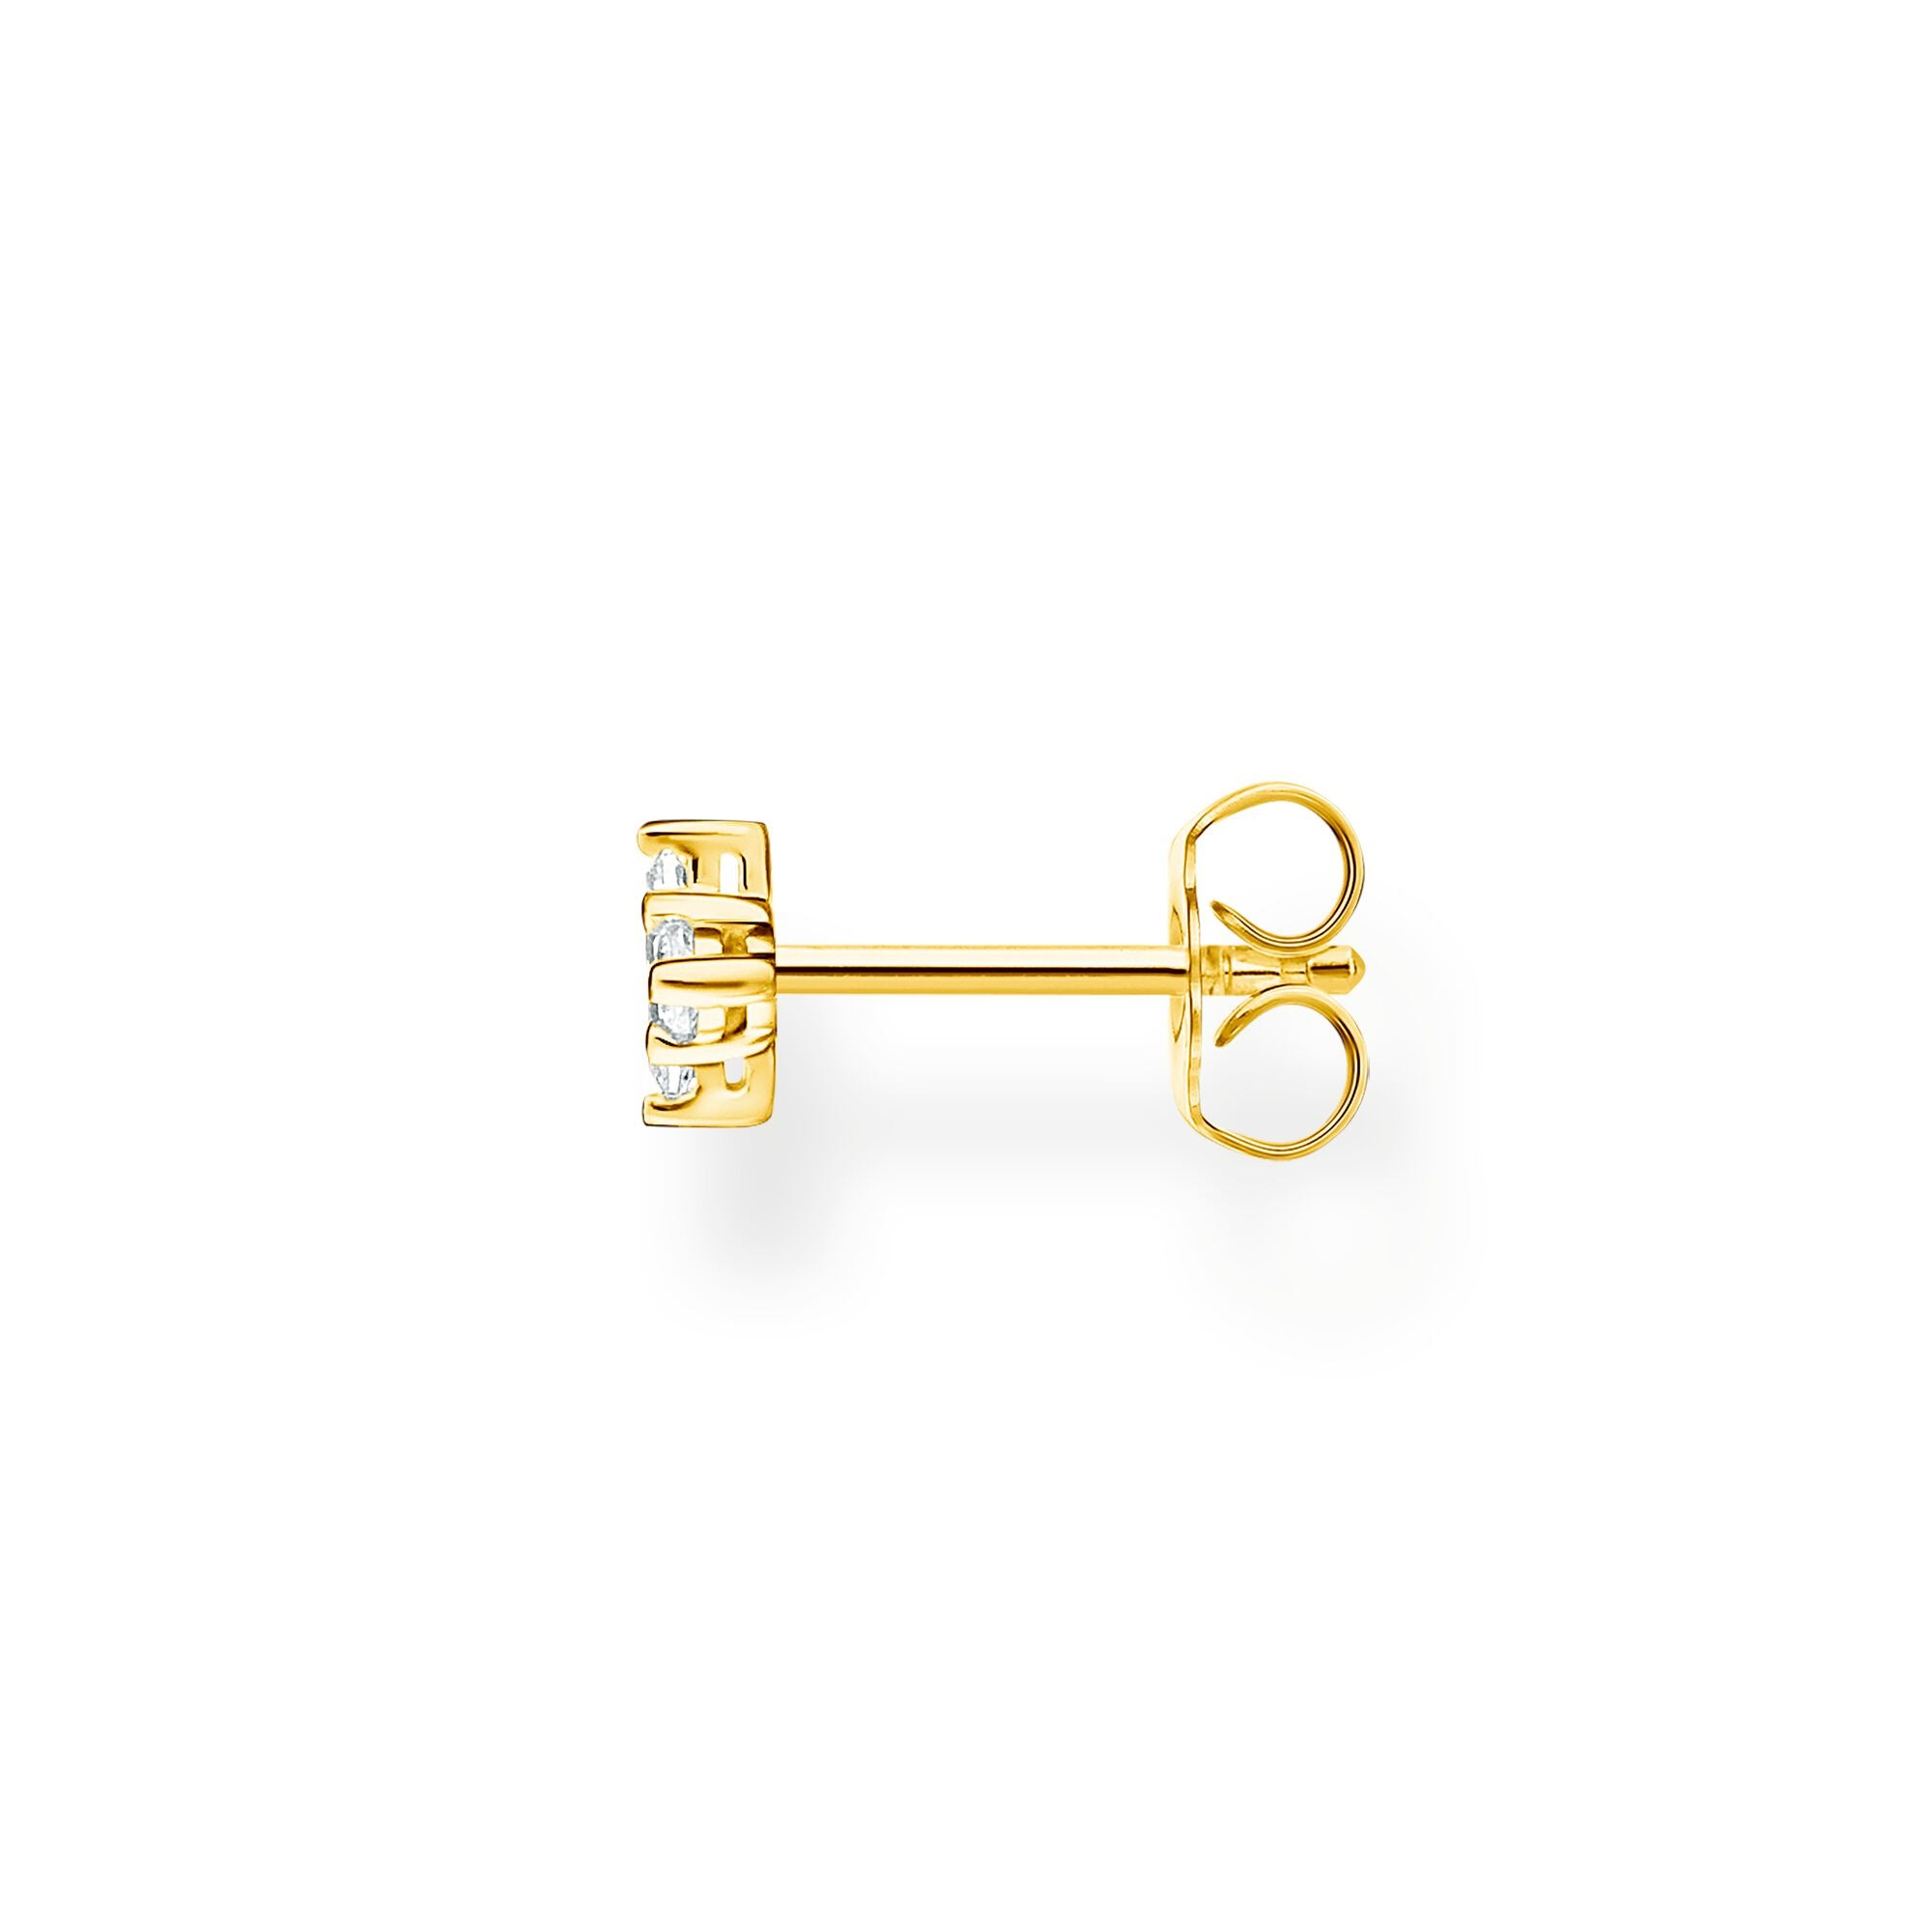 Thomas Sabo 18k yellow gold plated sterling silver and white baguette stone with round stone accent, single stud earring